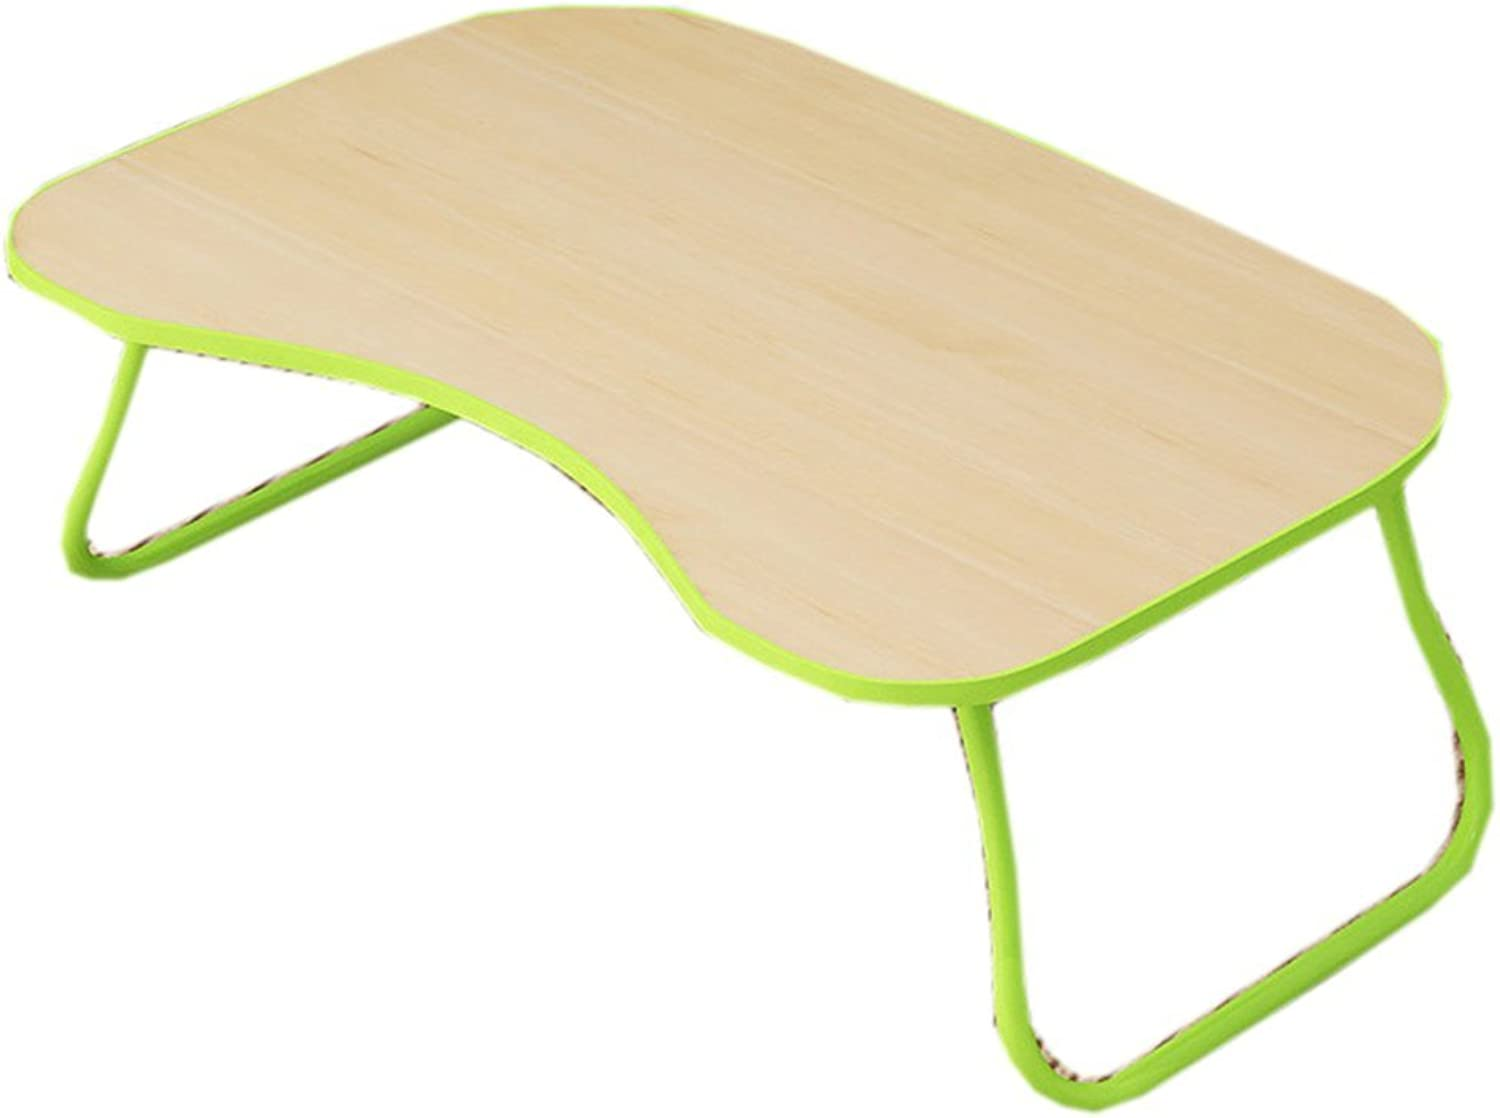 TJTG Collapsible Laptop Desk Table Portable Student Dormitory Small Table Shelf (color   Green)